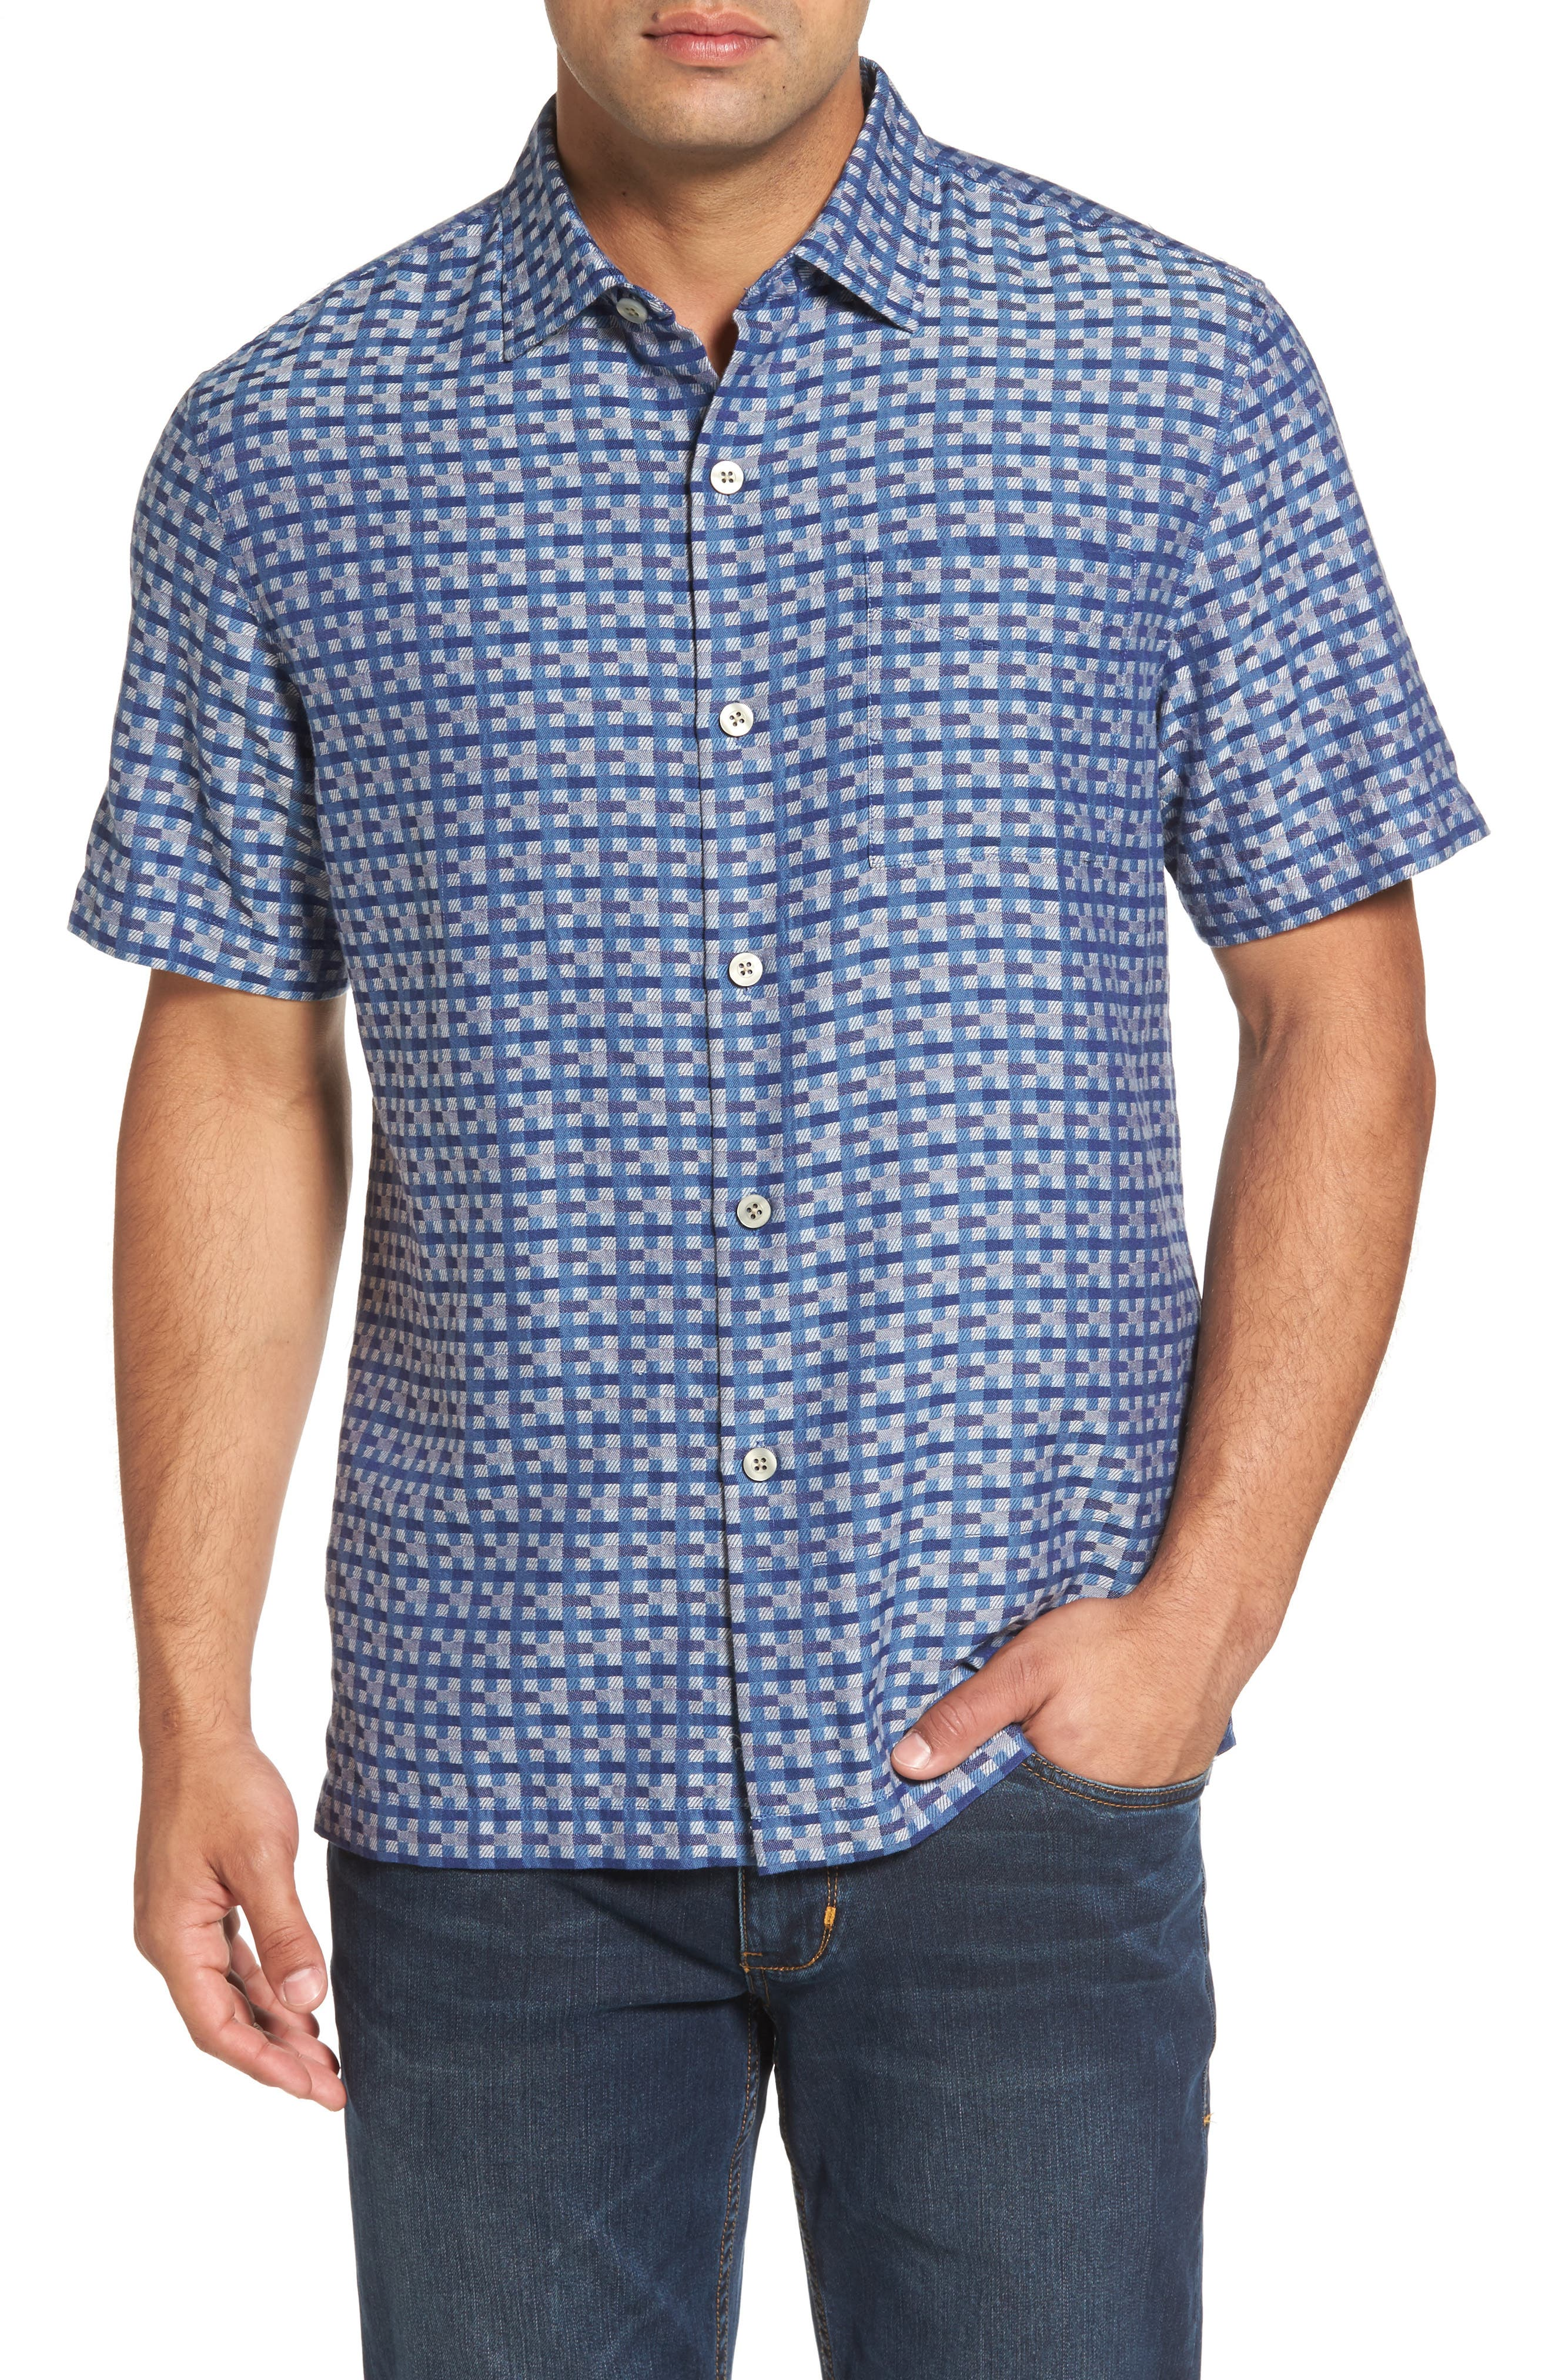 Alternate Image 1 Selected - Tommy Bahama Moroccan Squares Standard Fit Silk Blend Camp Shirt